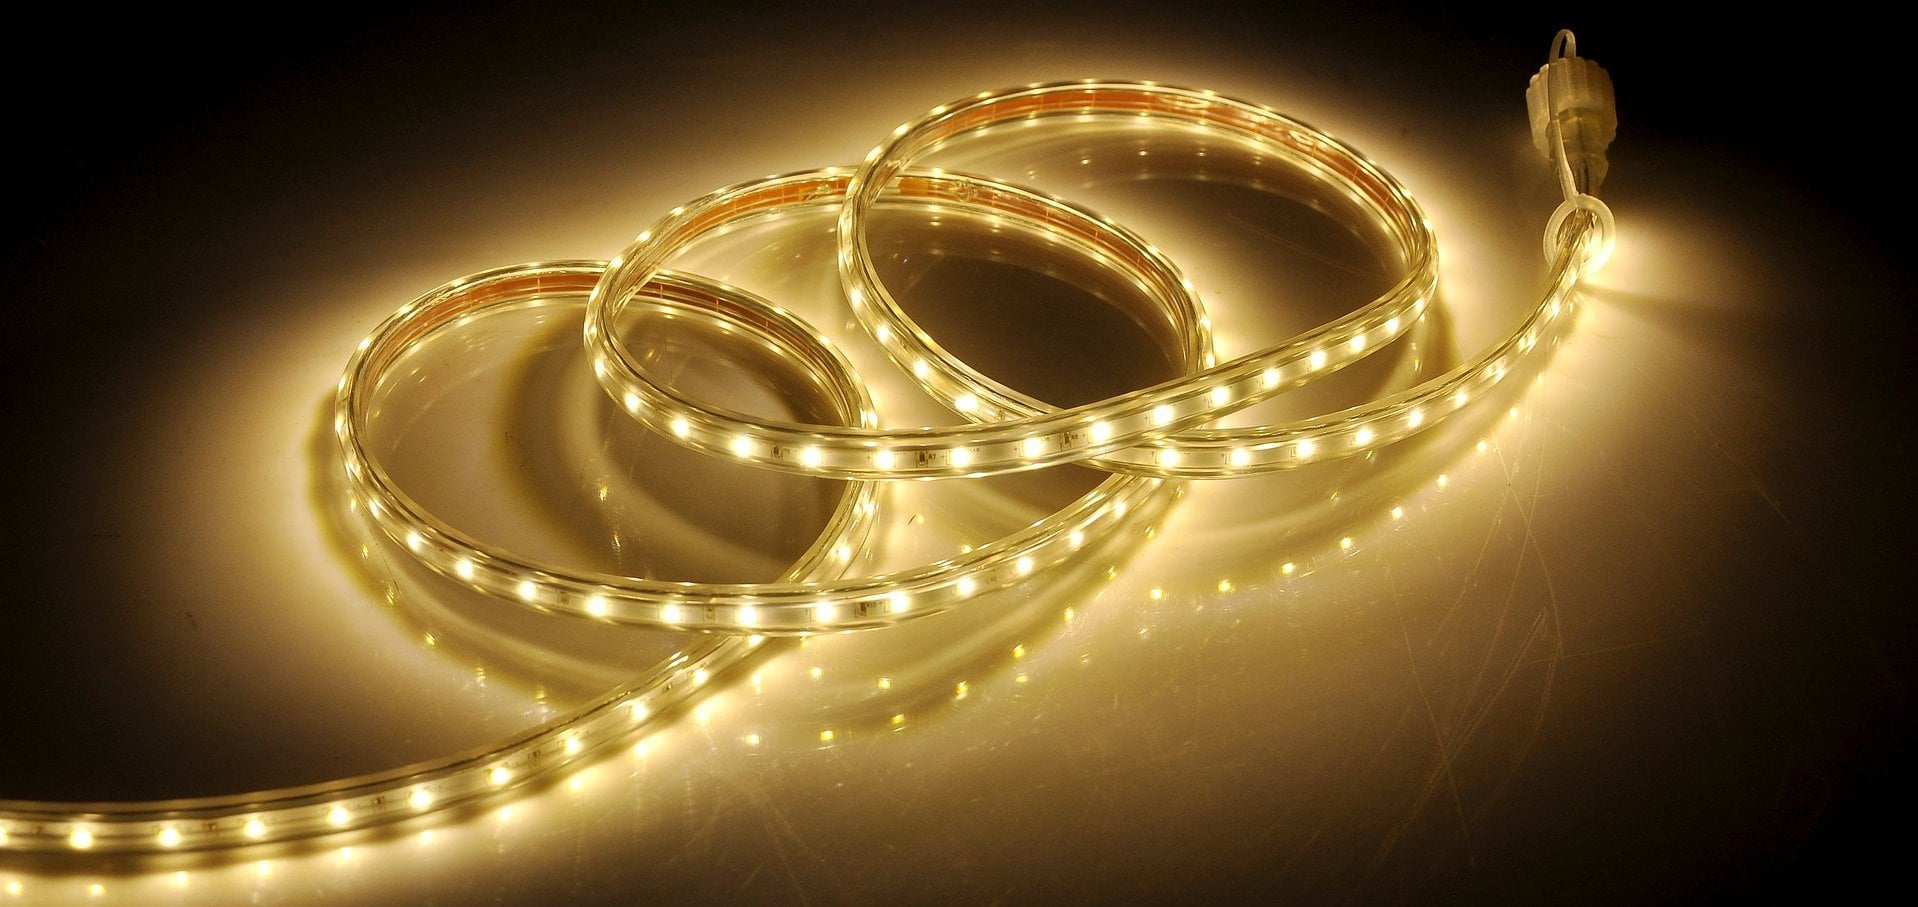 the halogen lights ban may make LED bulbs like these hose lights more common